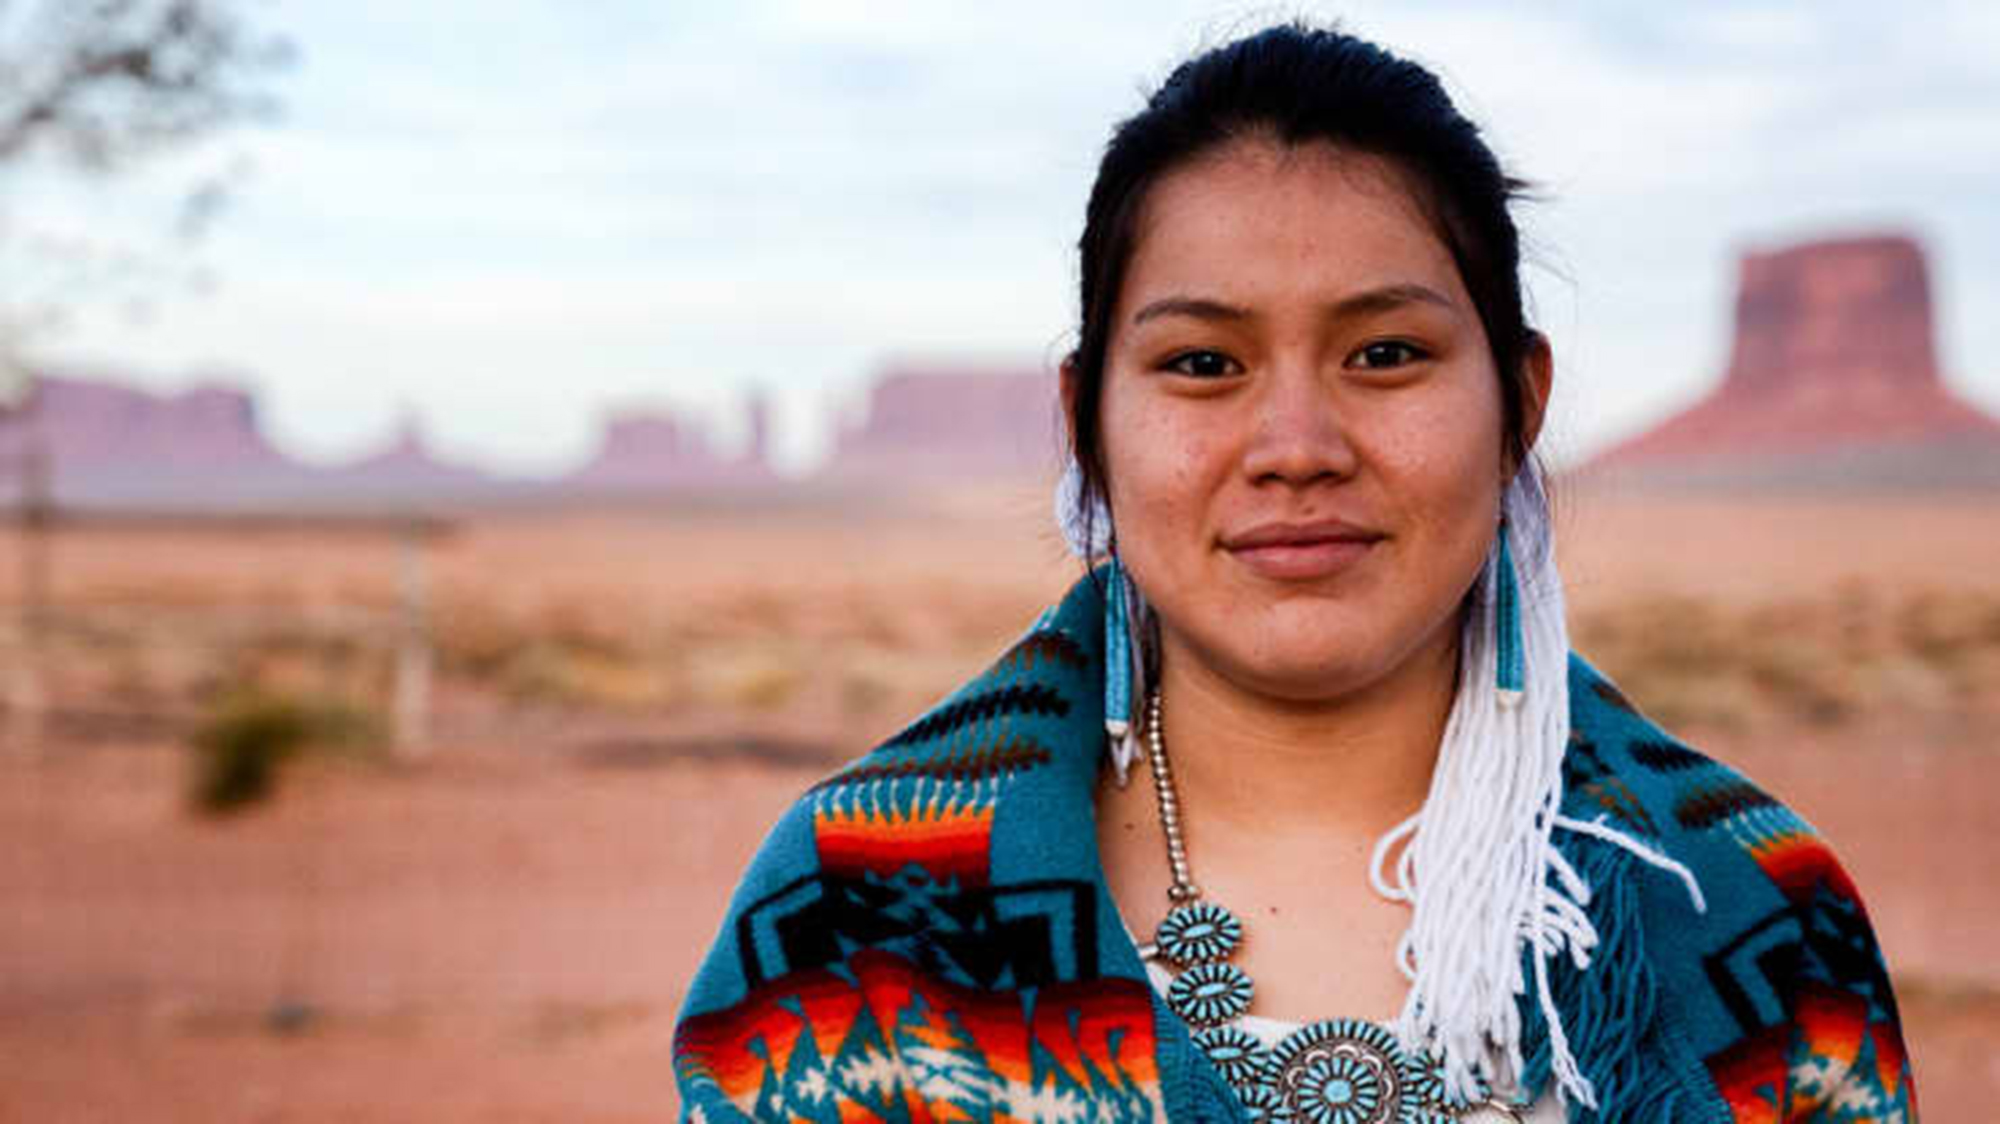 Native American women lose nearly $1 million to the pay gap over their careers—and Covid-19 could make the disparity worse